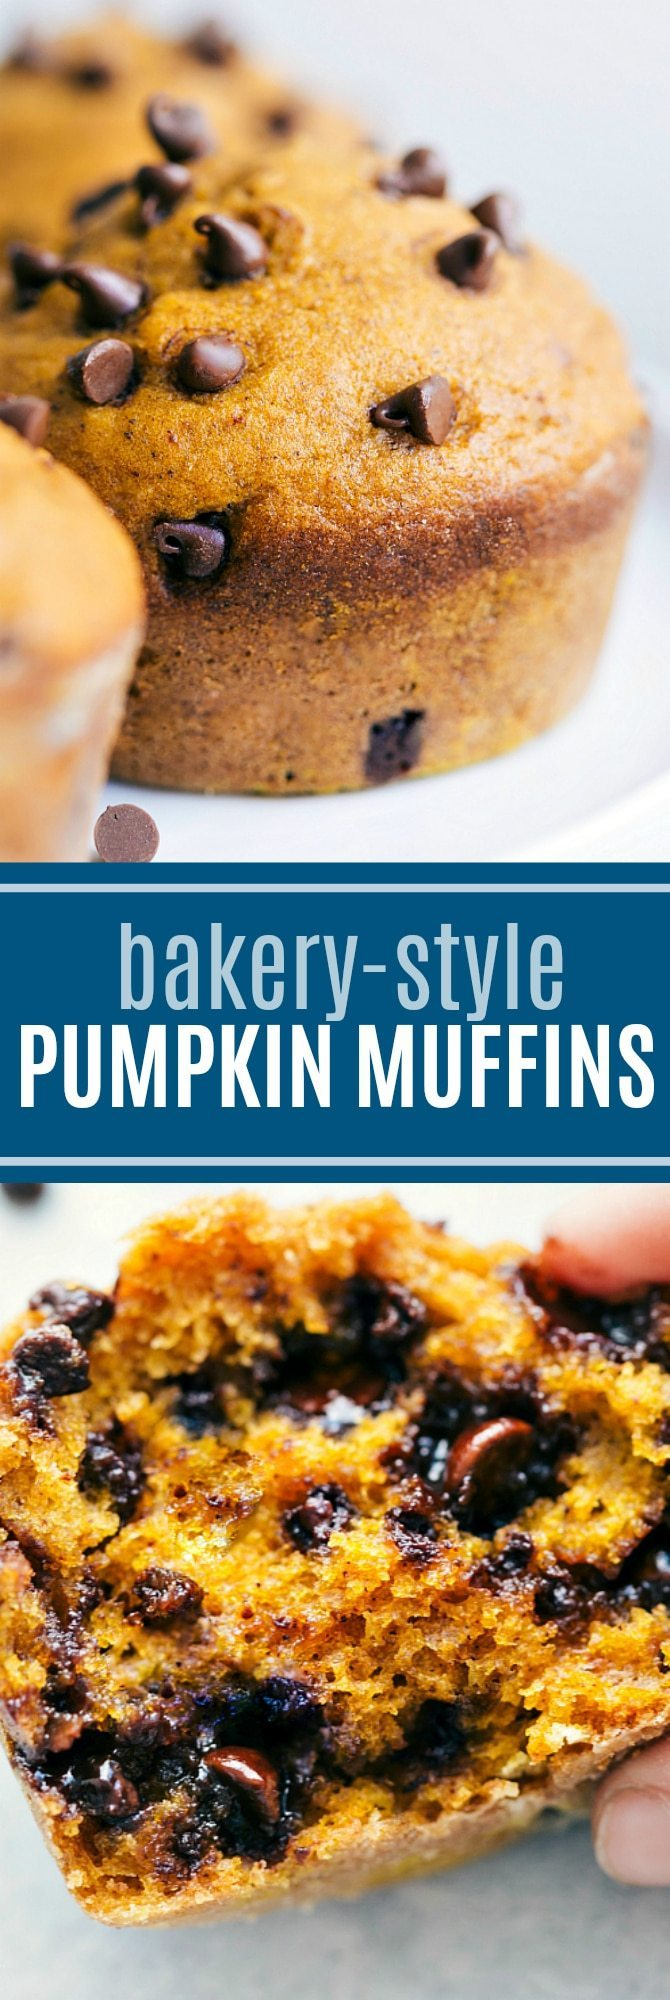 Barefoot Contessa Pumpkin Muffins Pumpkin Chocolate Chip Muffins Chelsea S Messy Apron